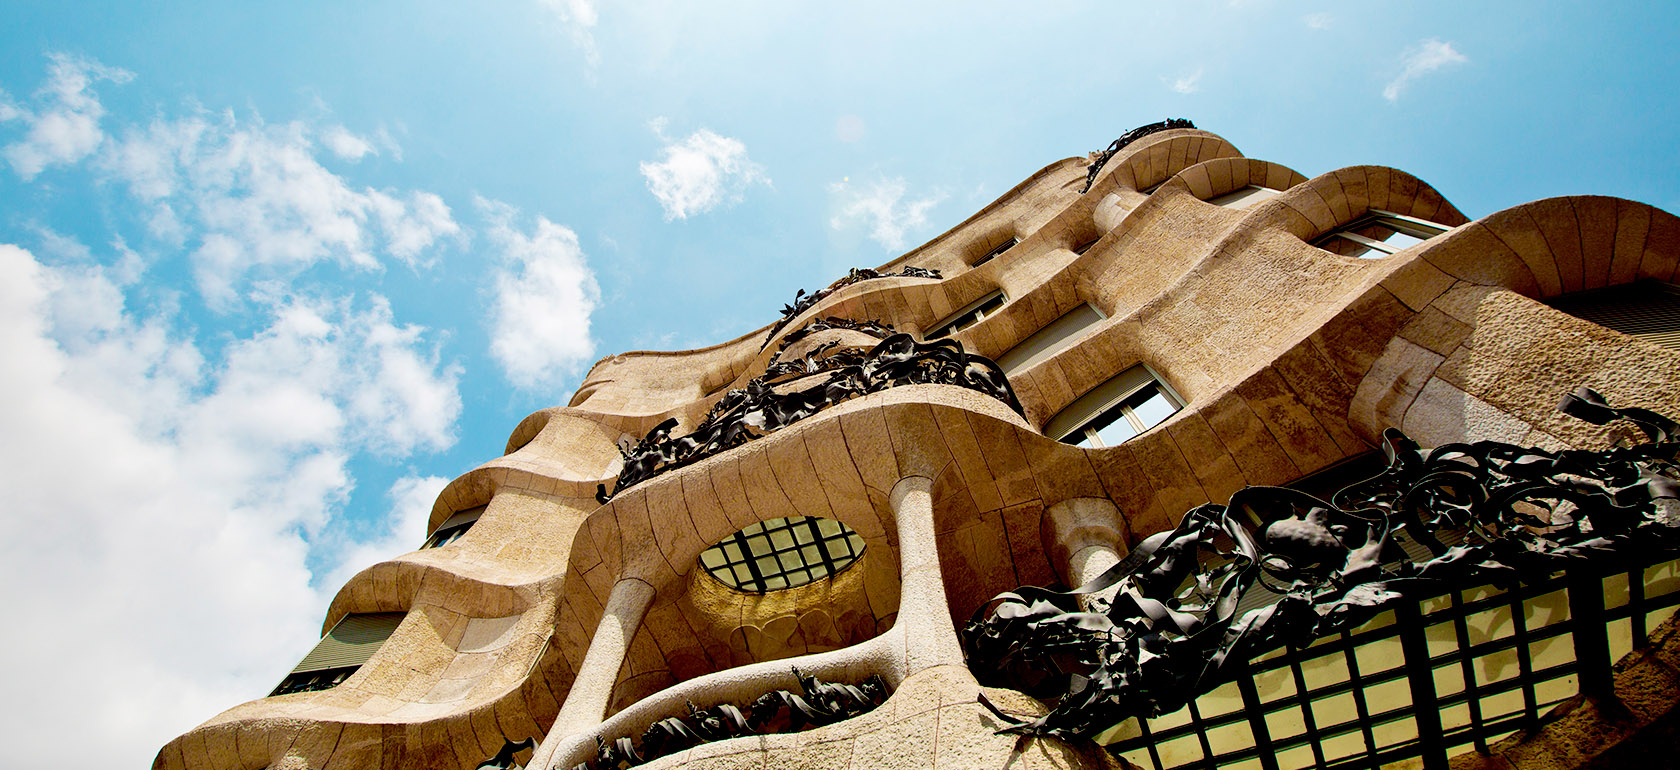 Casa Mila + Audioguida in italiano